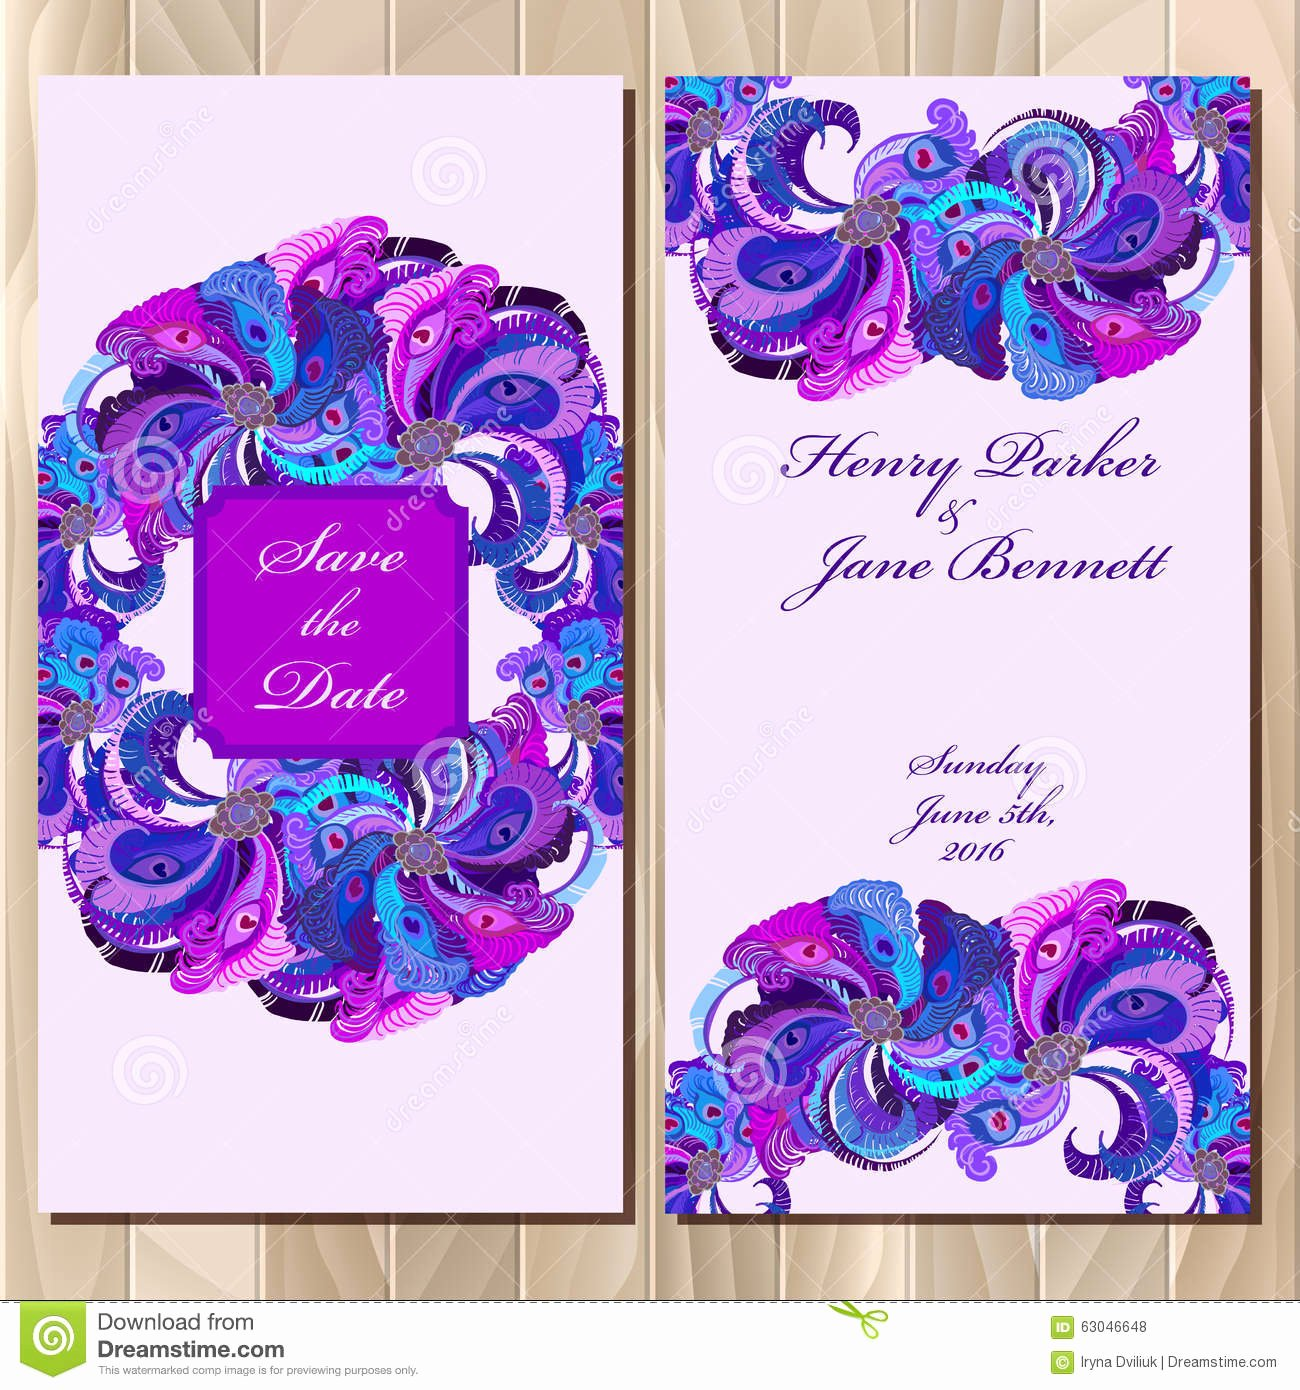 Peacock Invitations Template Free Best Of Peacock Invitation Templates